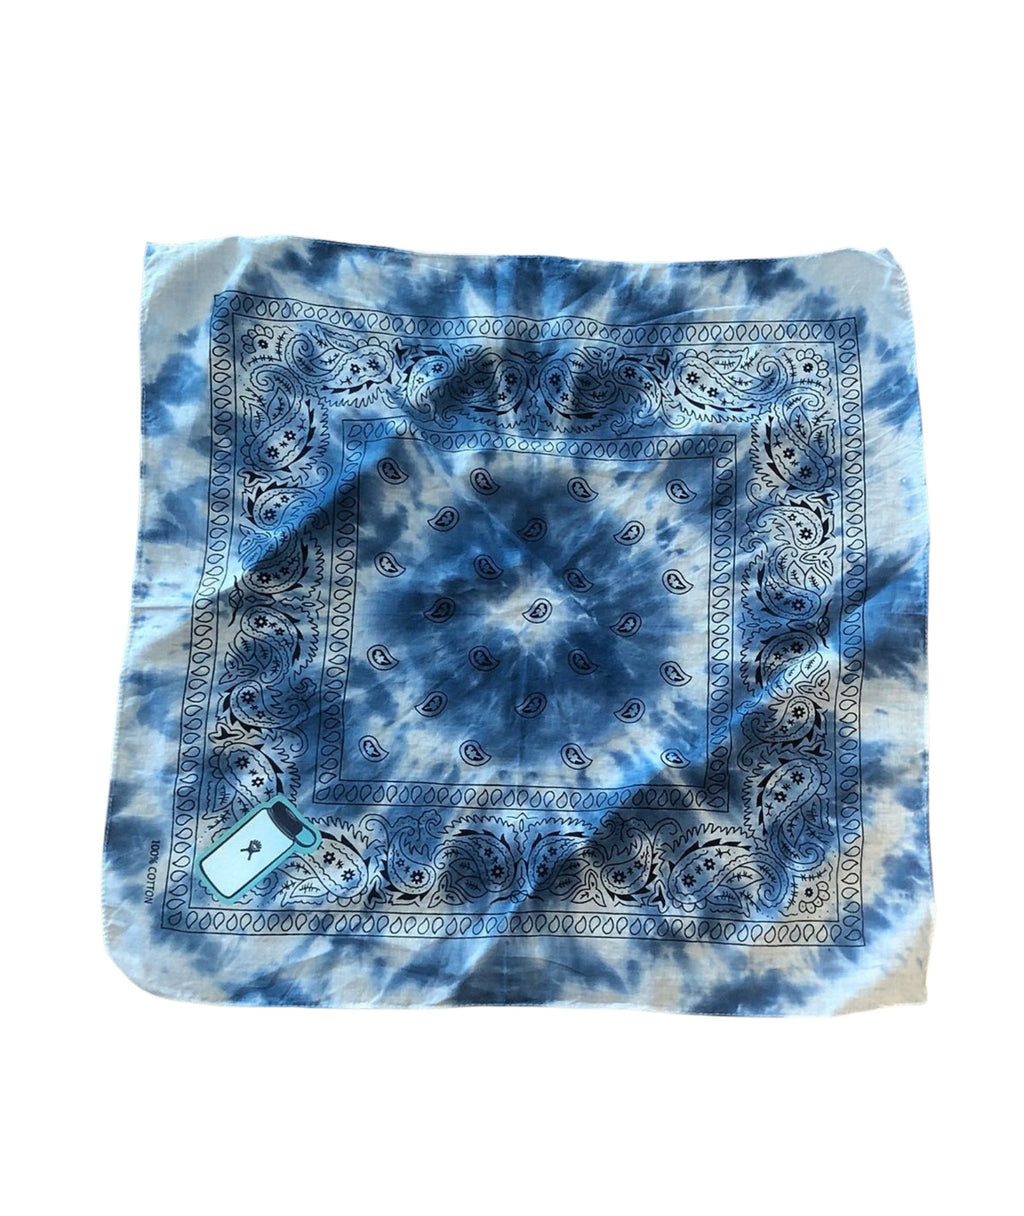 Theme-NYC Hydro Flask Bandana